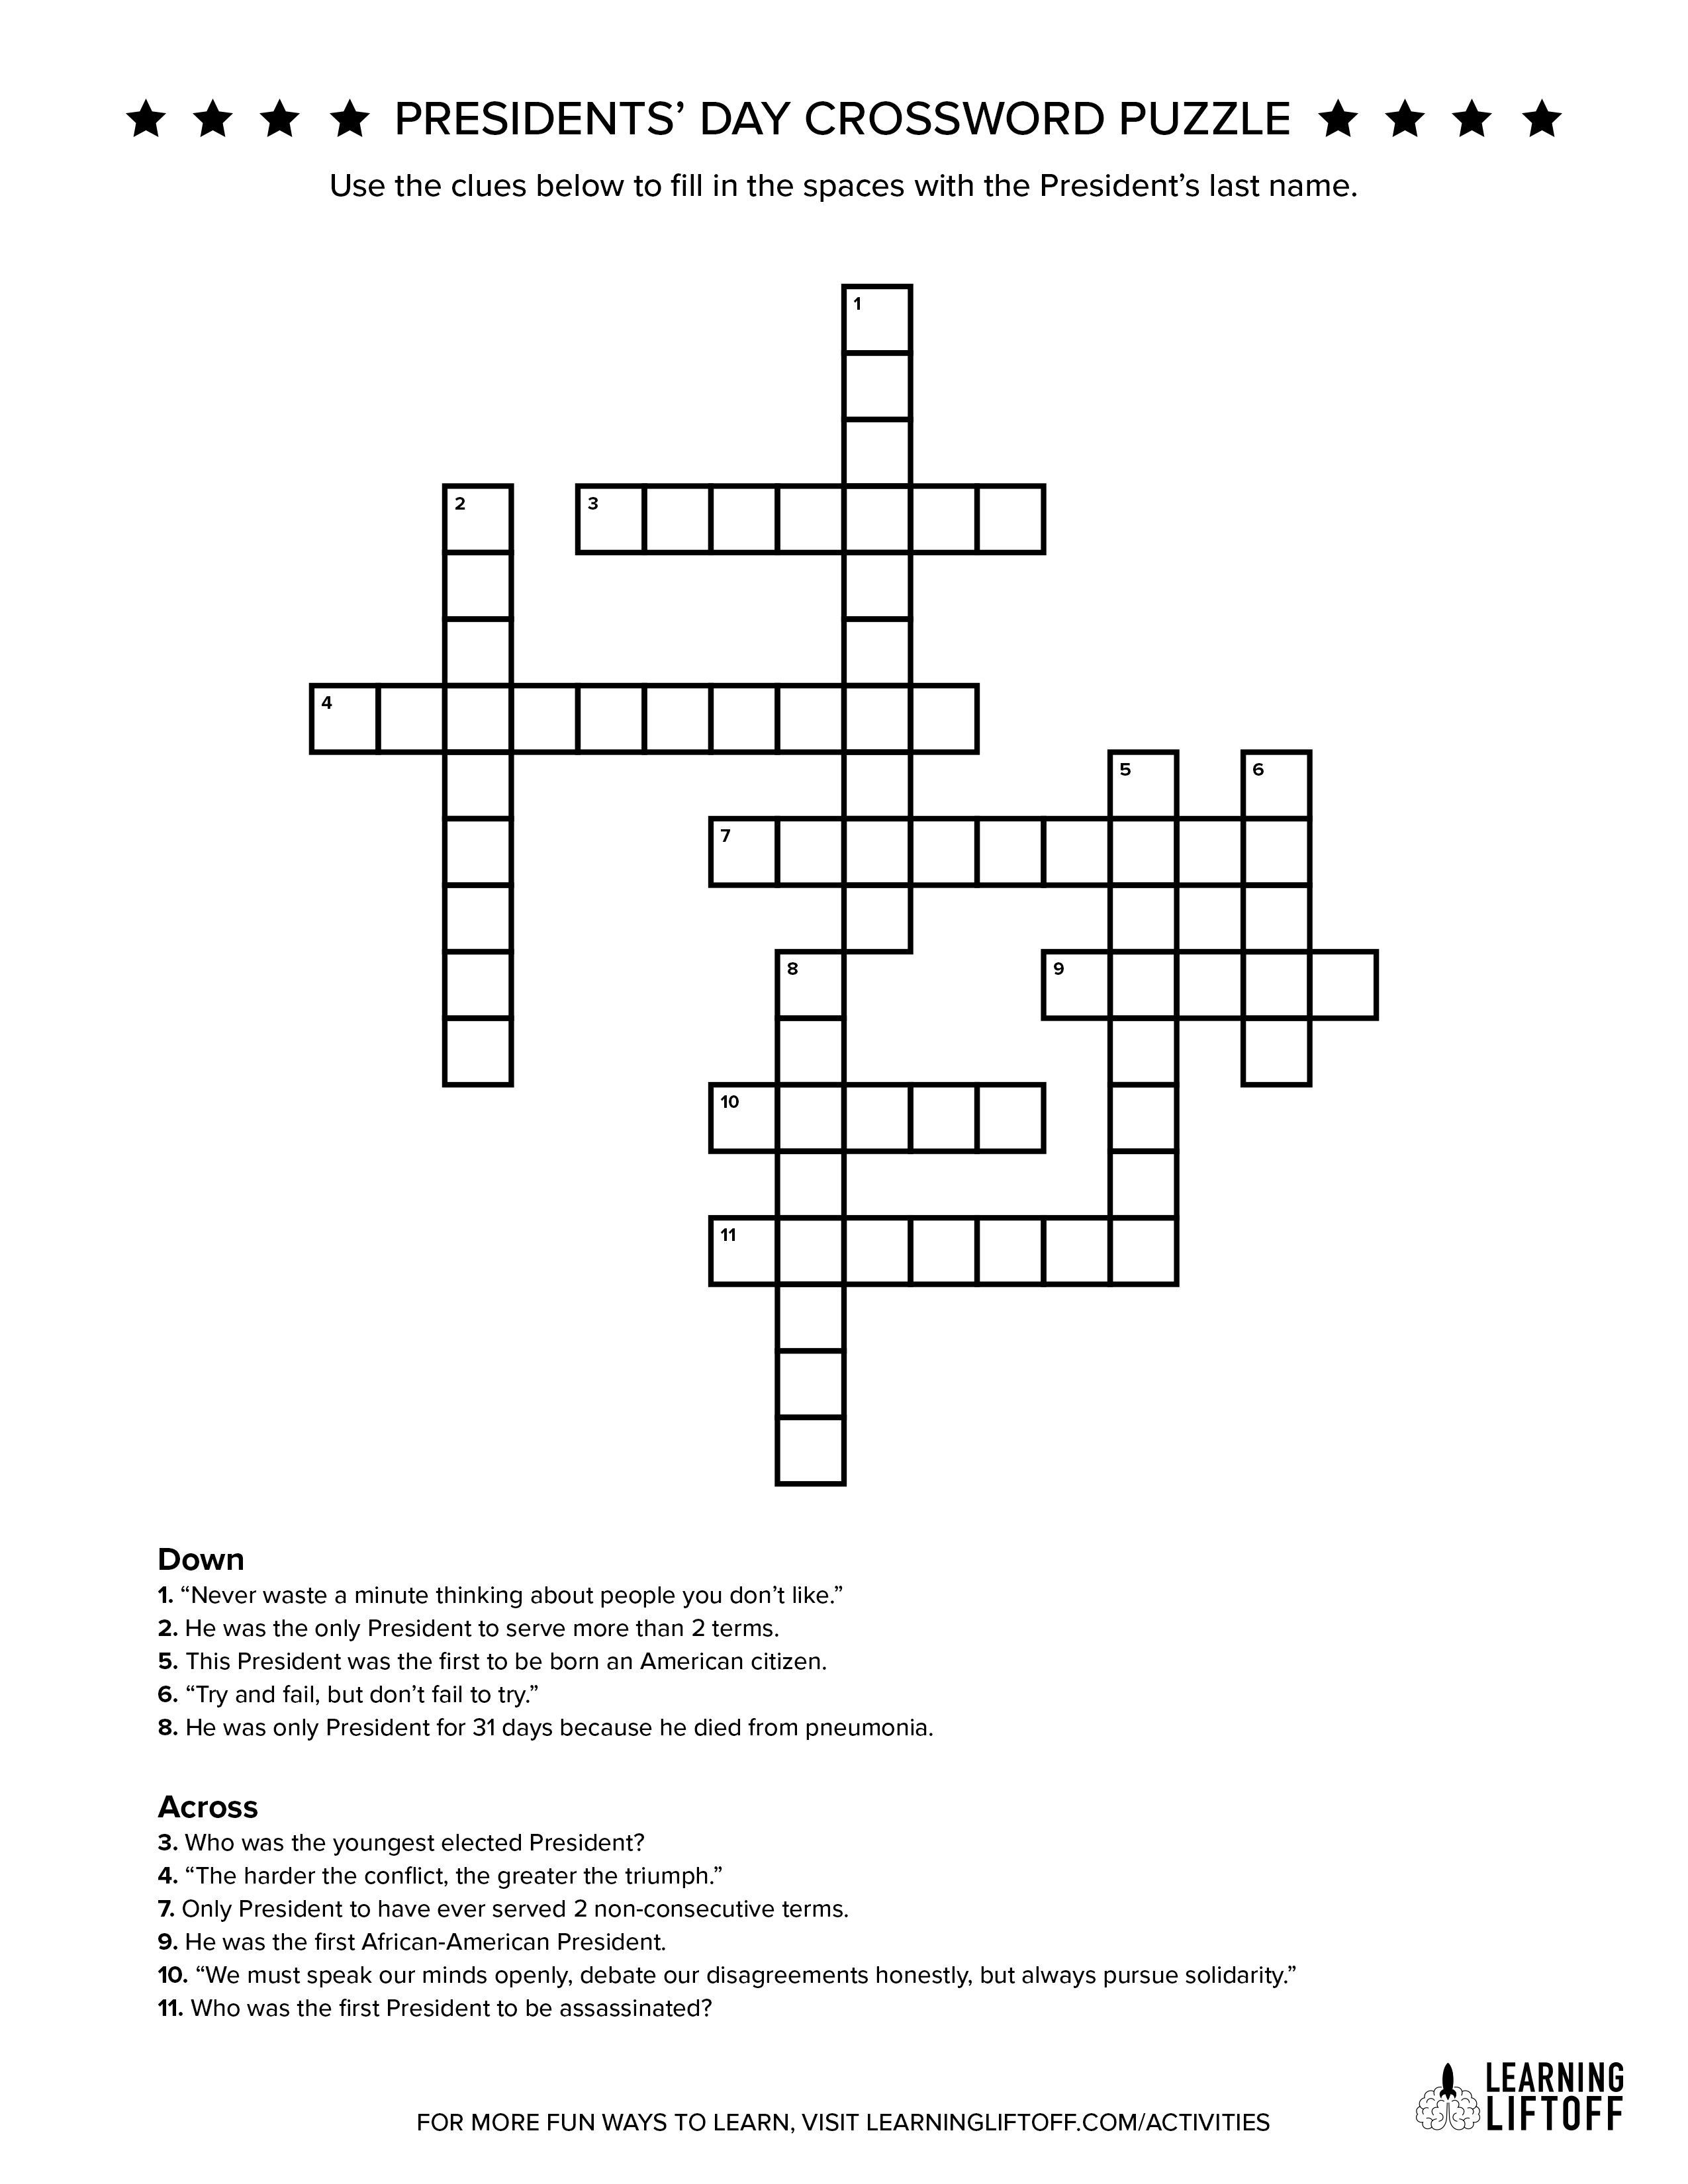 How Much Do You Know About Our U.s. Presidents? - Learning Liftoff - Us Presidents Crossword Puzzle Printable